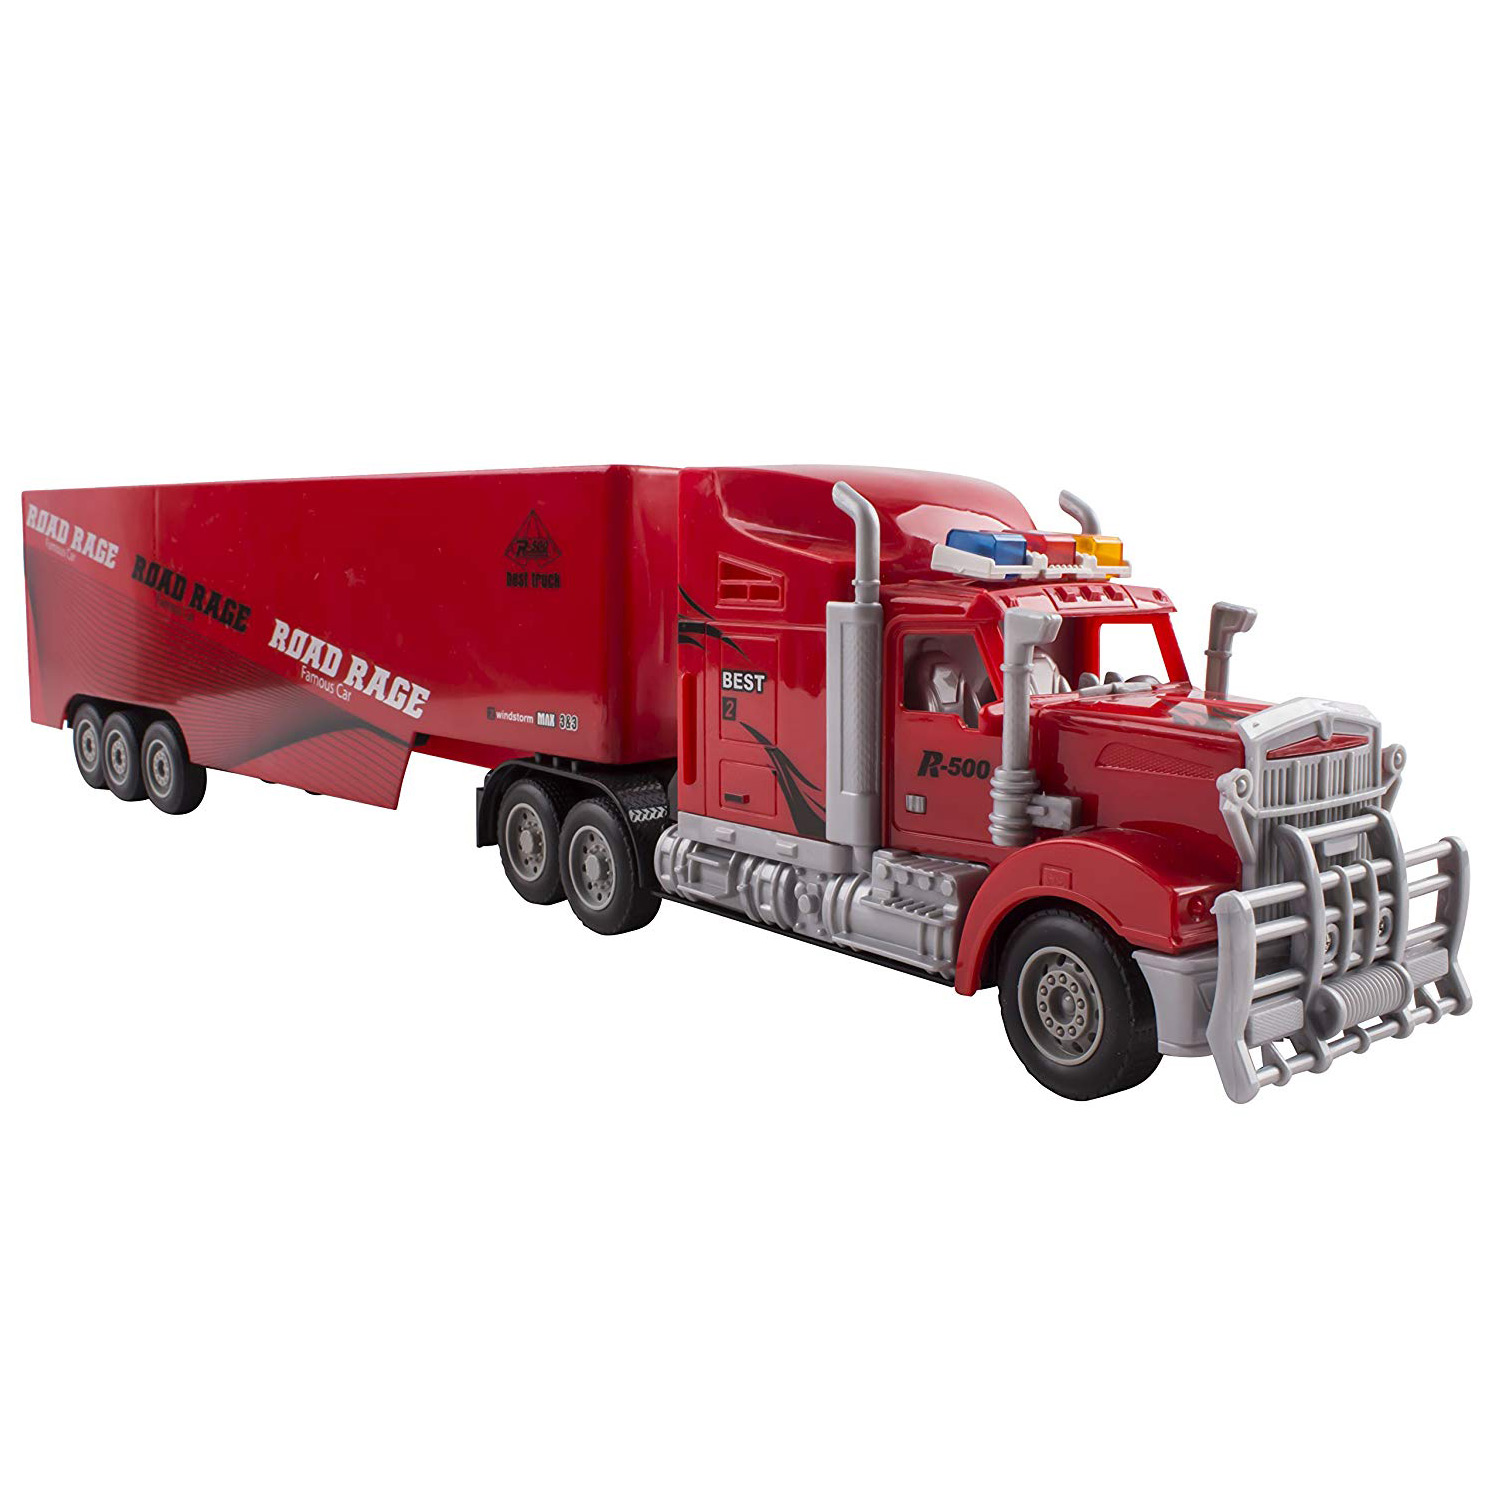 Toy Semi Truck Trailer 23 Electric Hauler Remote Control Rc Children S Transporter Ready To Run Full Cargo Perfect Big Rig For Kids Toys Red Toyz X Online Toy Store Affordable Toys